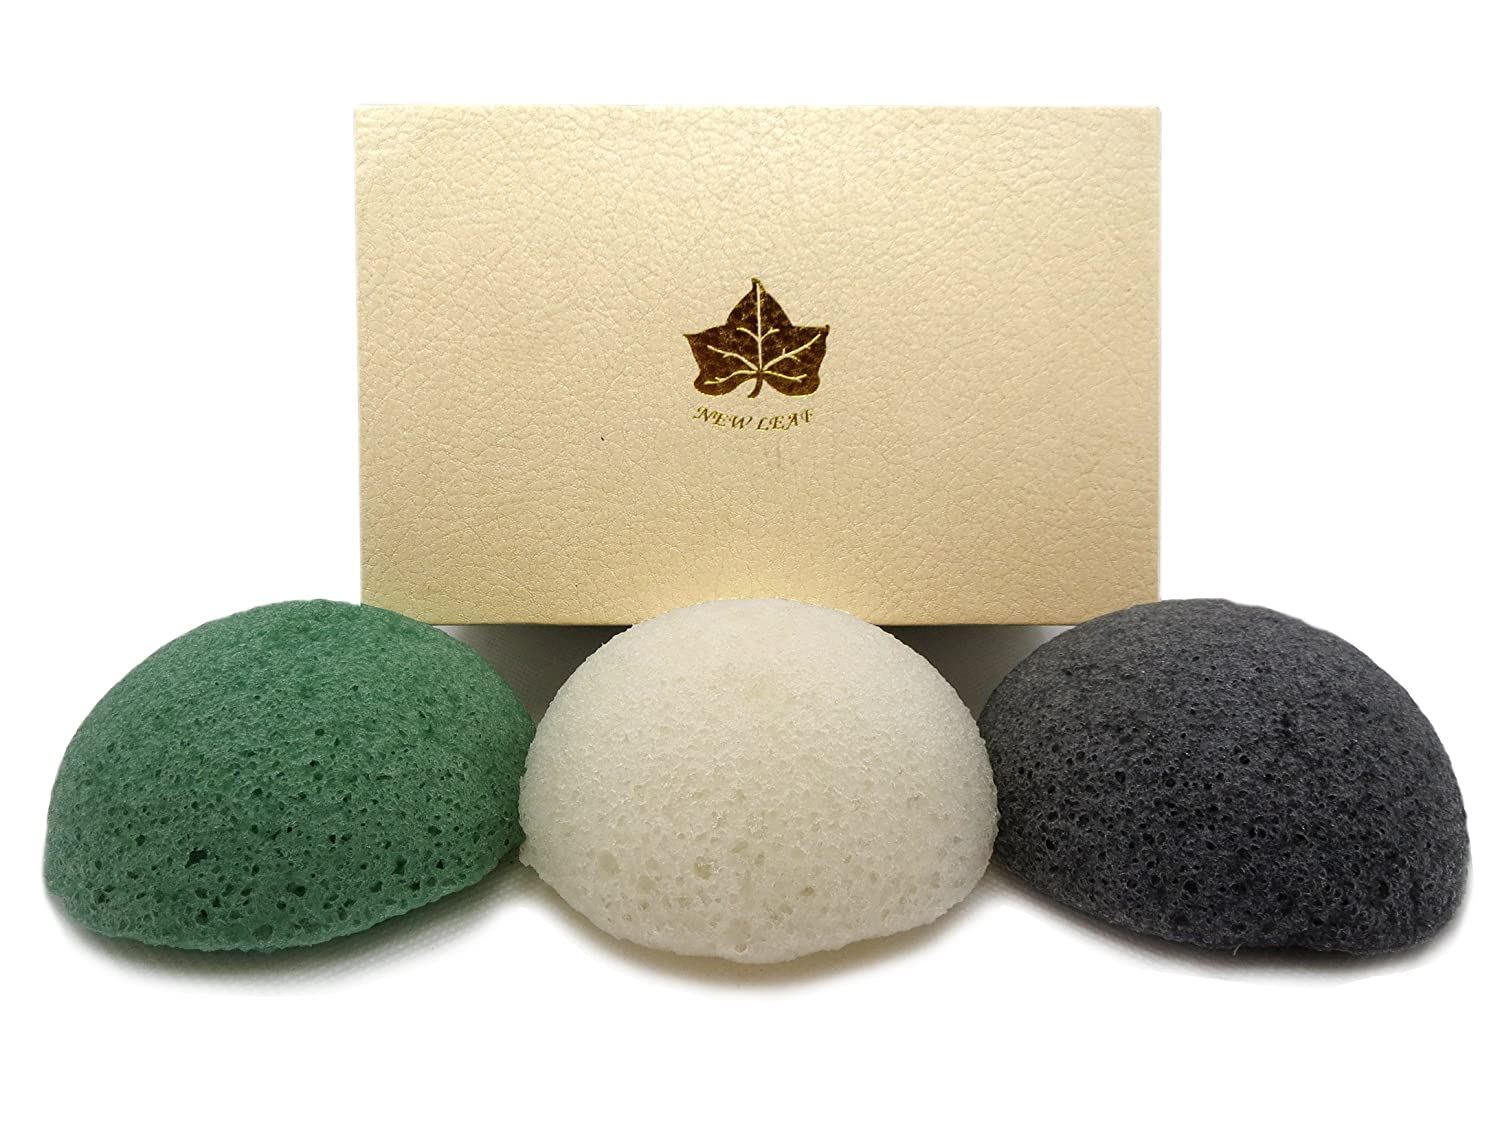 3 Pack of Charcoal, Green Tea, White Konjac Sponges in Ivory Gift Box New Leaf Products Ltd